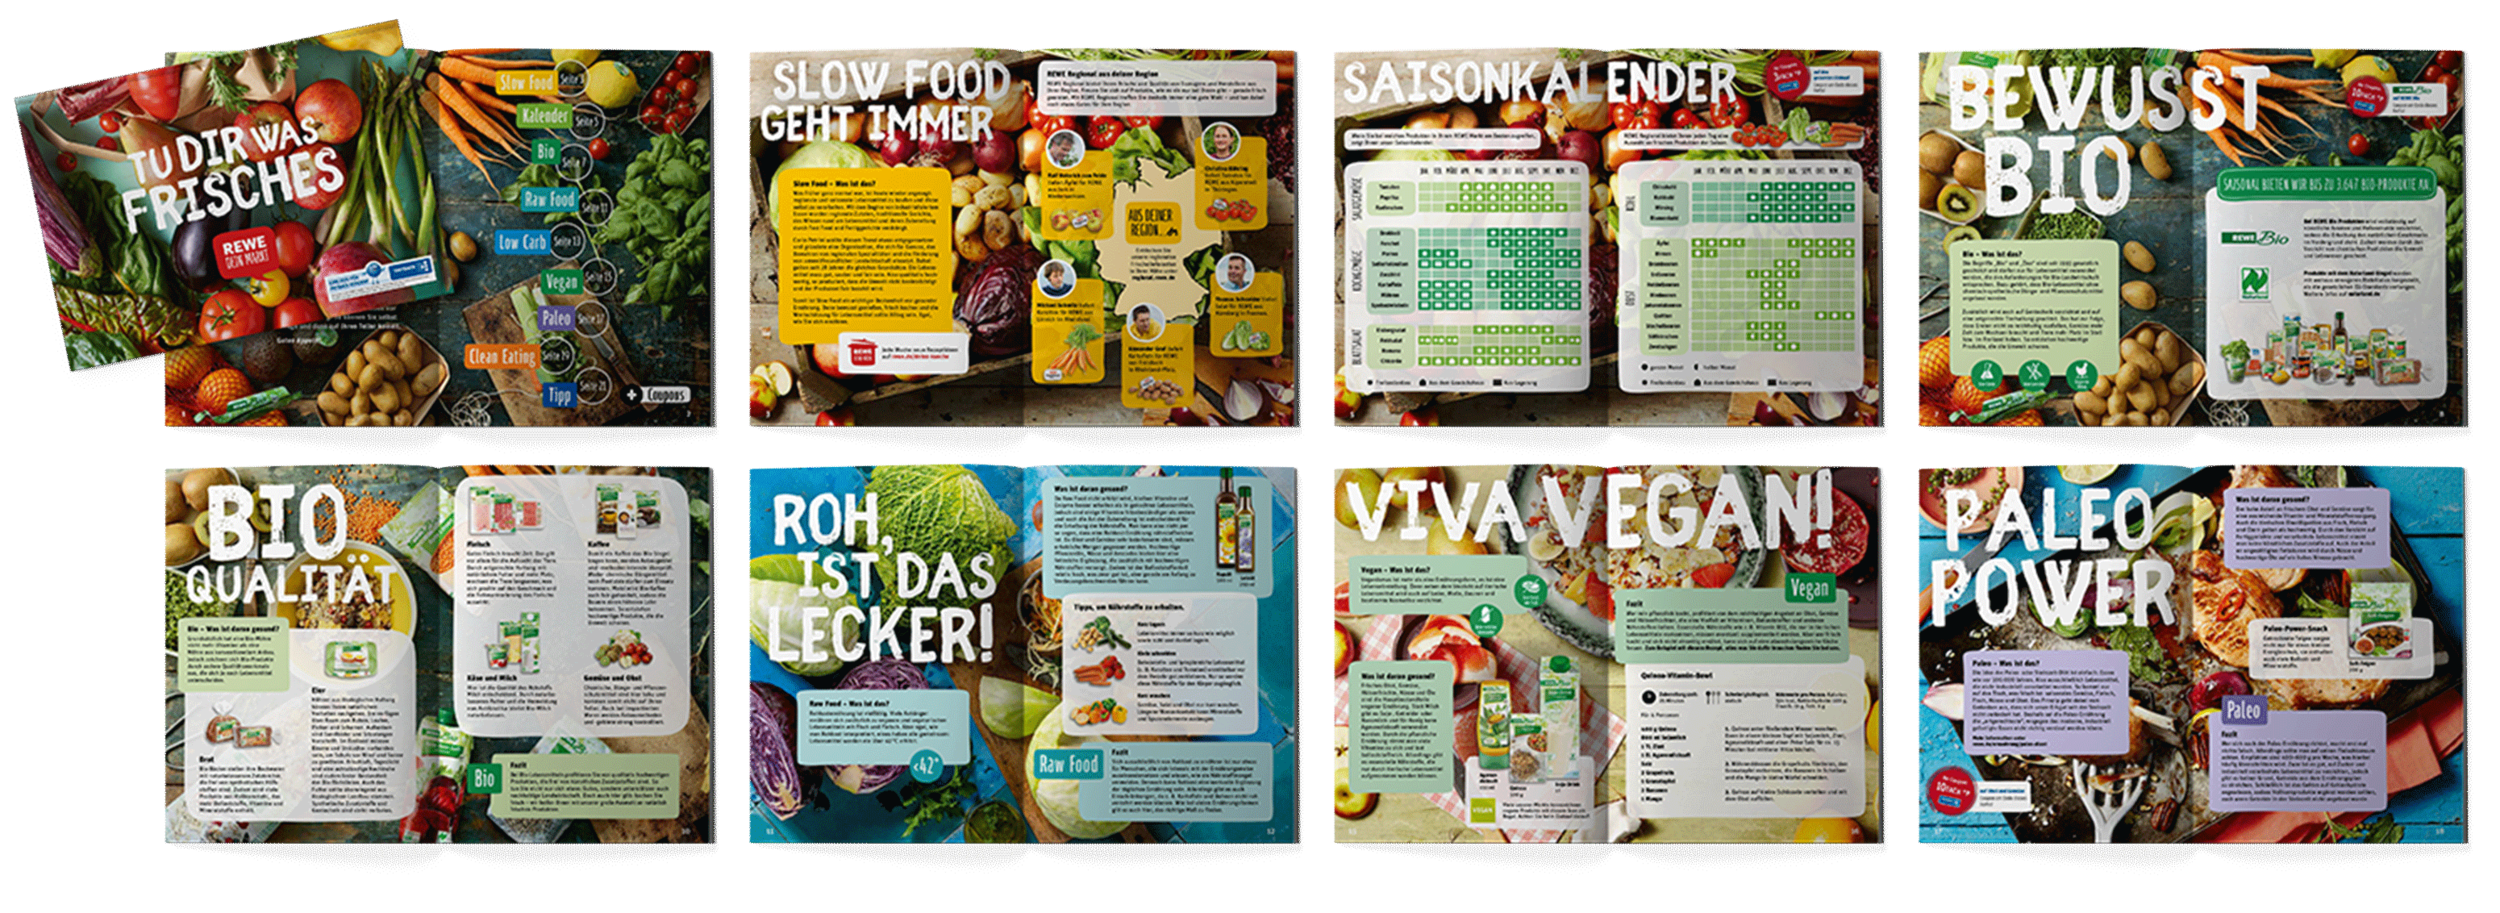 3100x2160px_REWE_Campaigns_02_Print_Rocco_png8.png